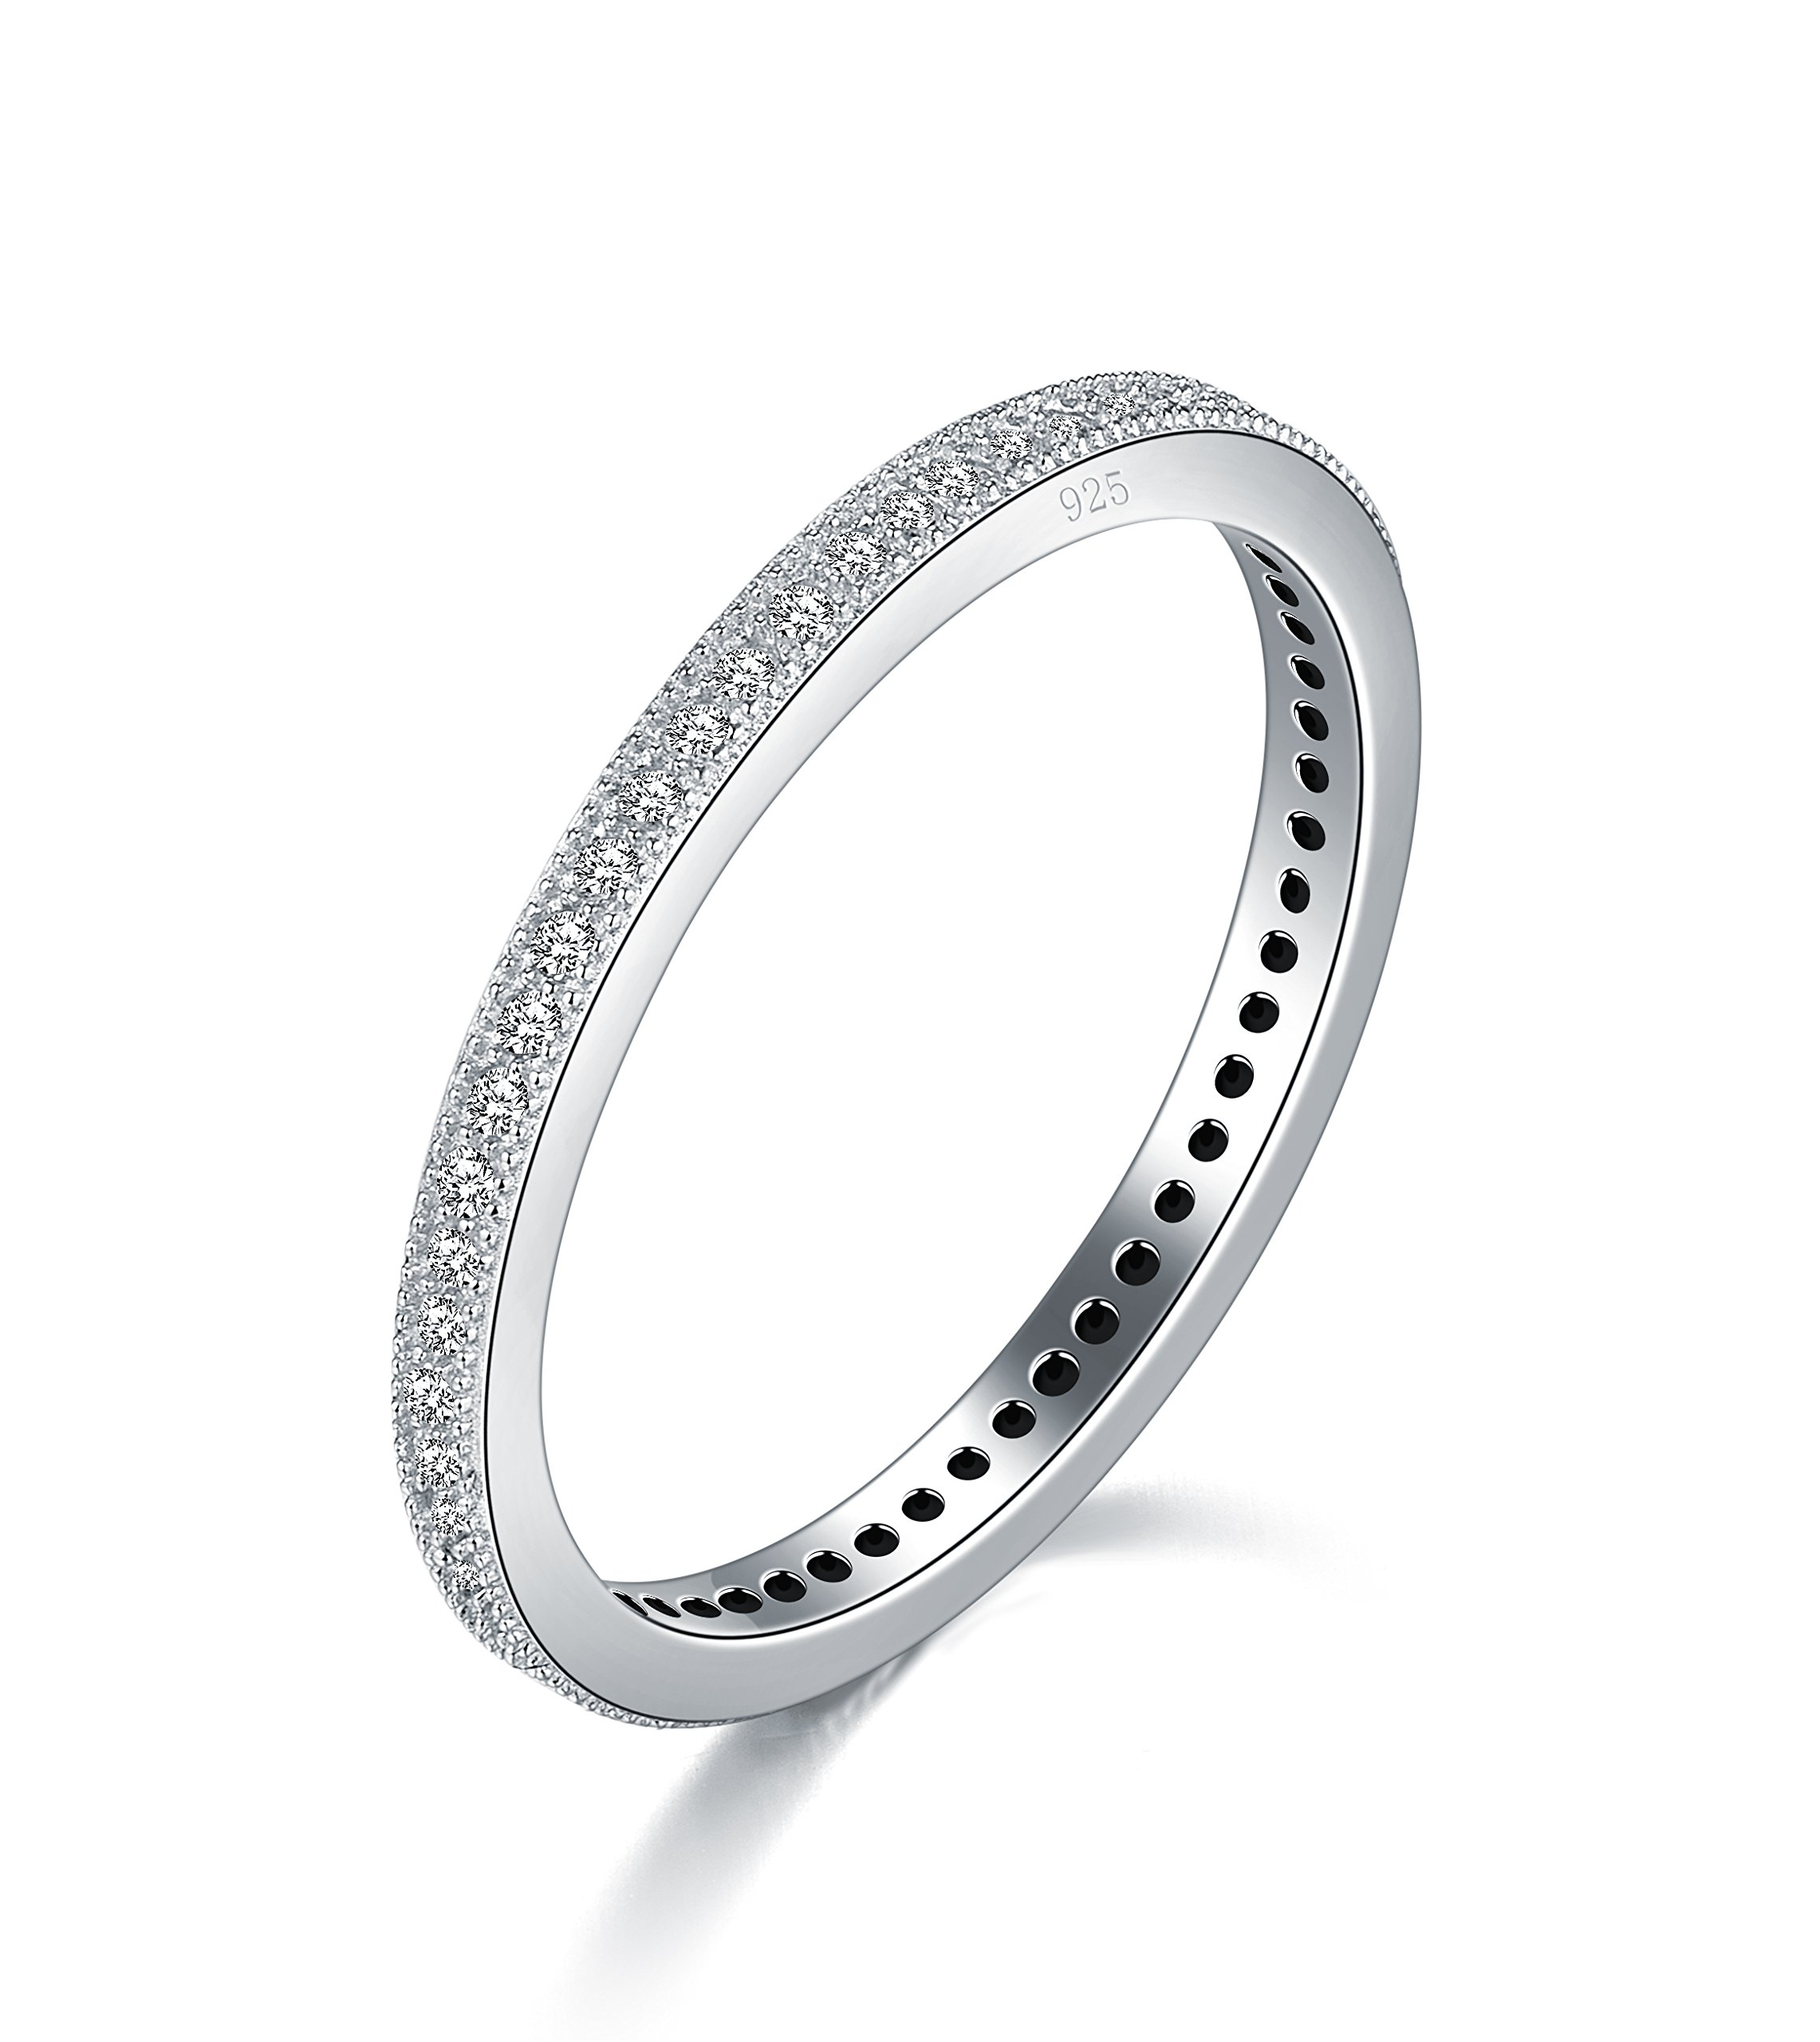 BORUO 2MM 925 Sterling Silver Ring Cubic Zirconia CZ Eternity Wedding Band Stackable Ring Size 4-12